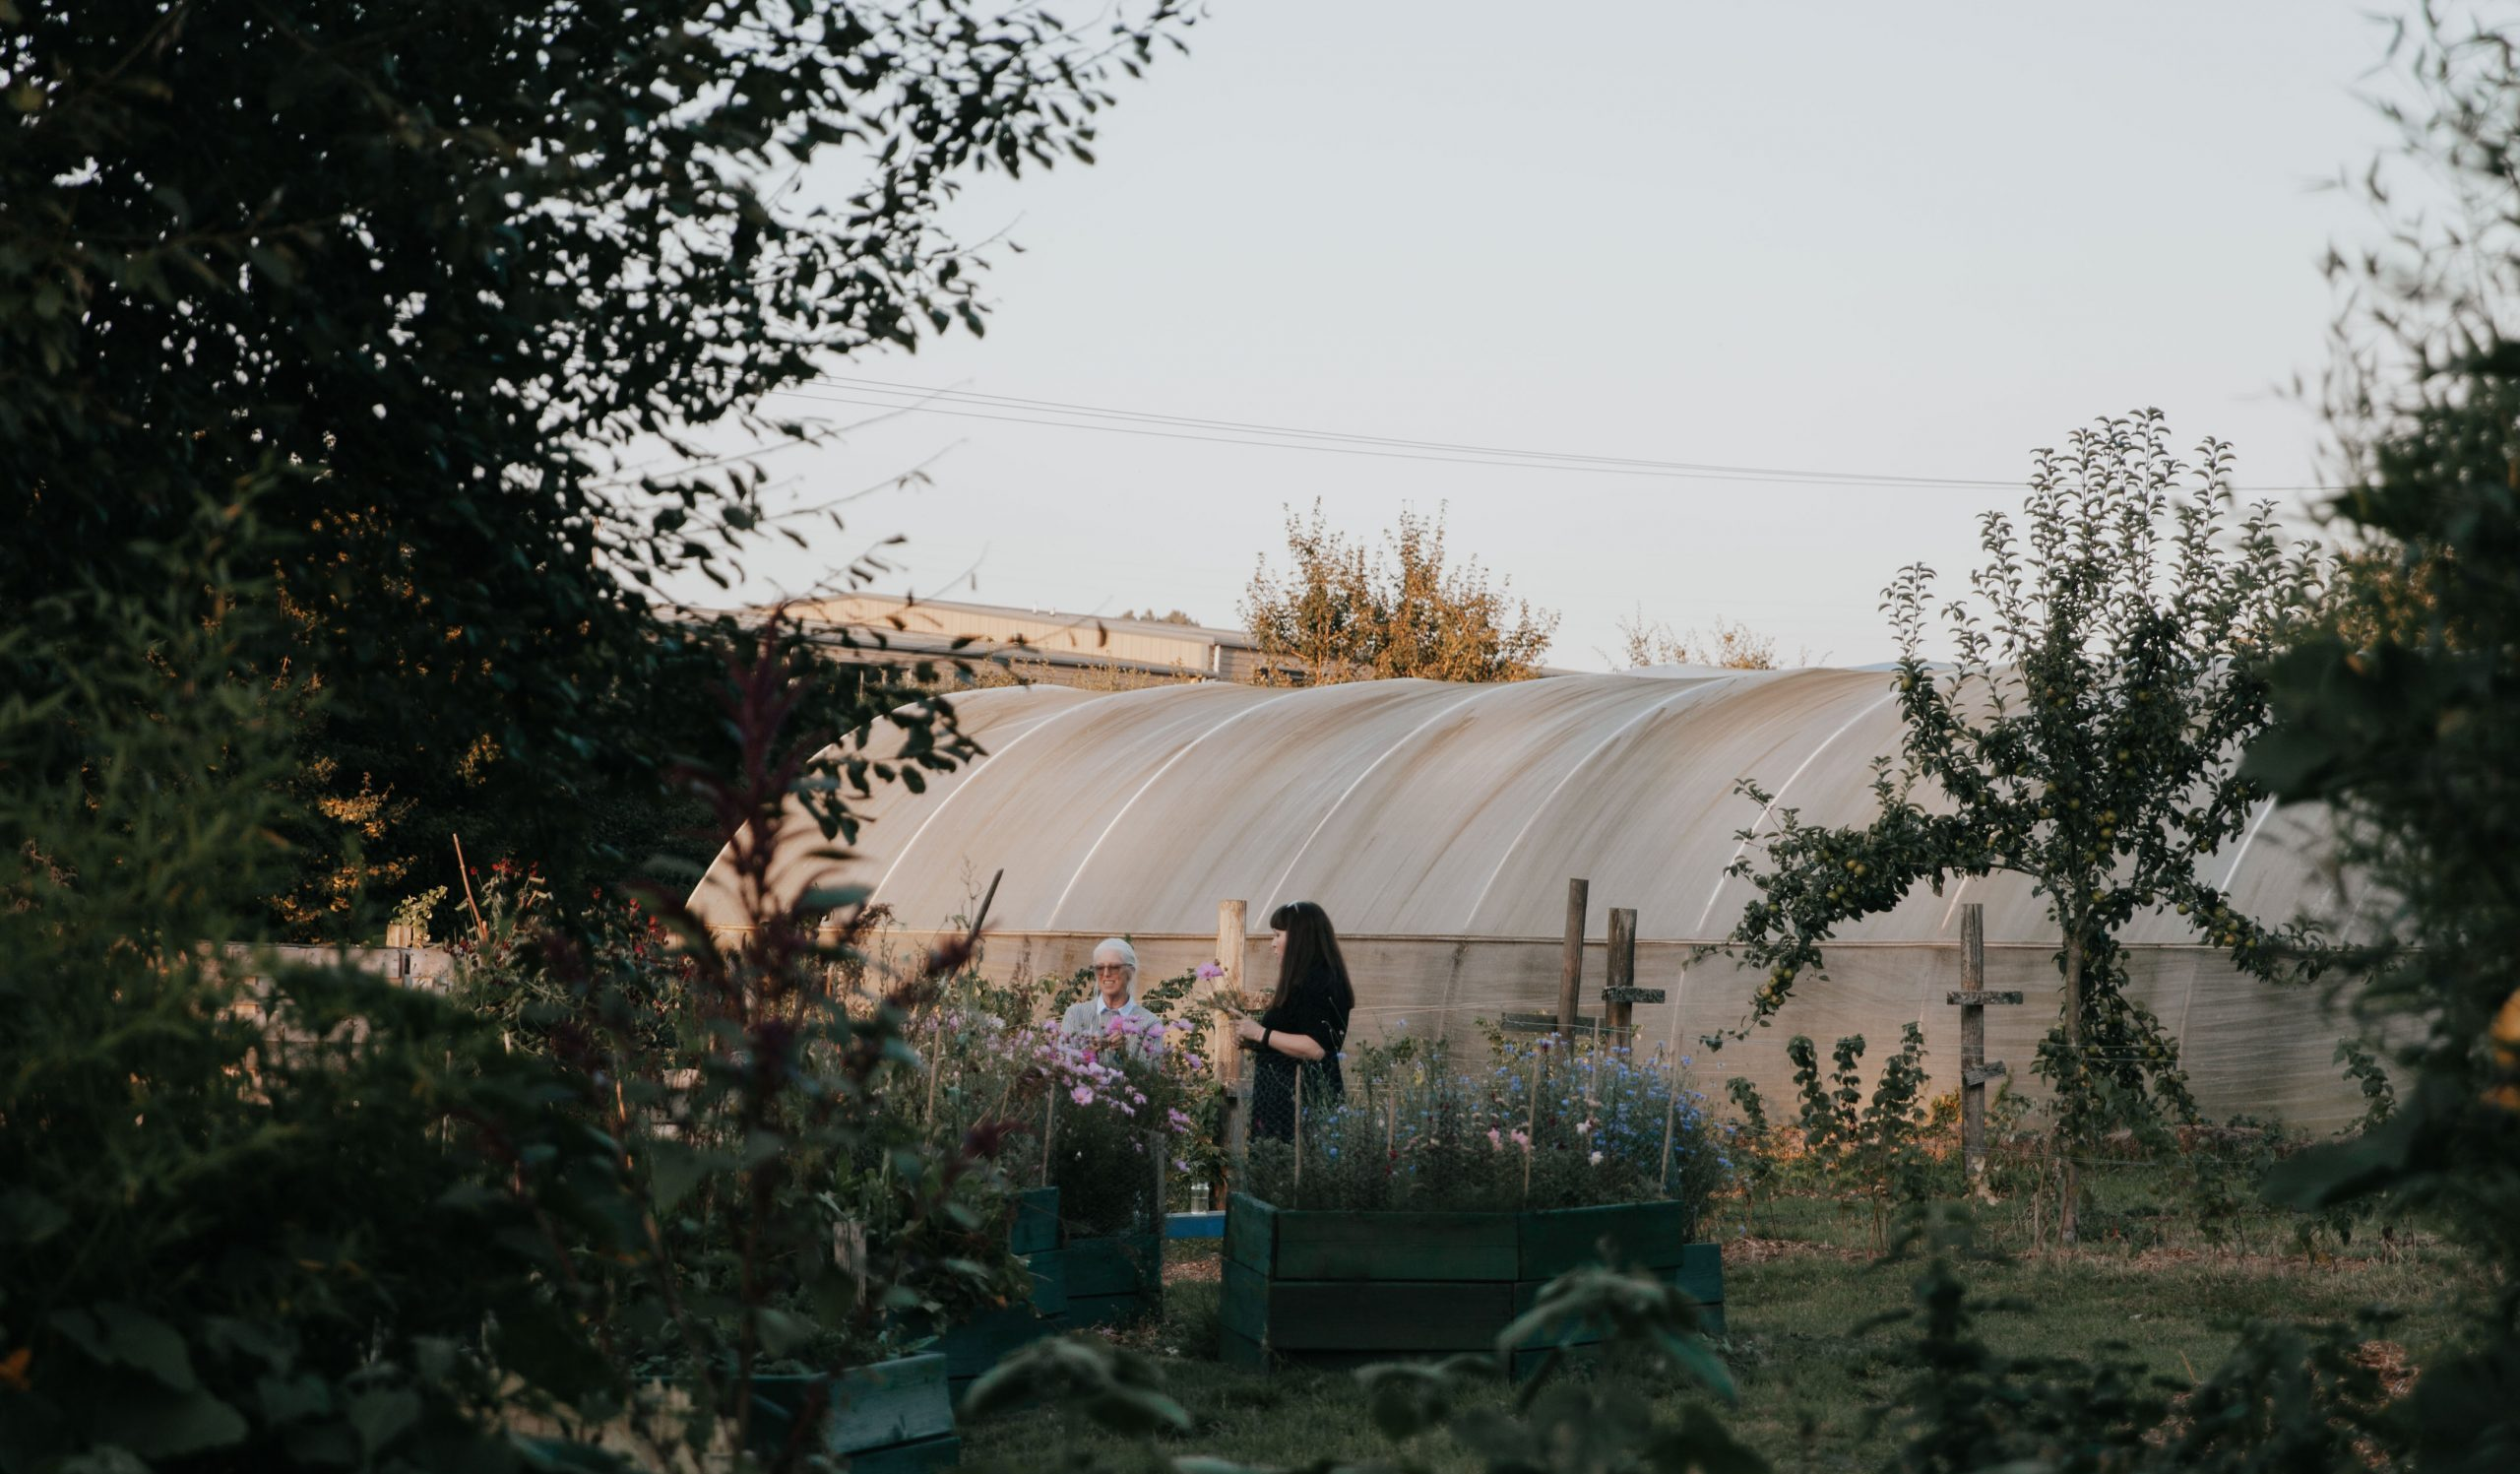 view of people and polytunnel